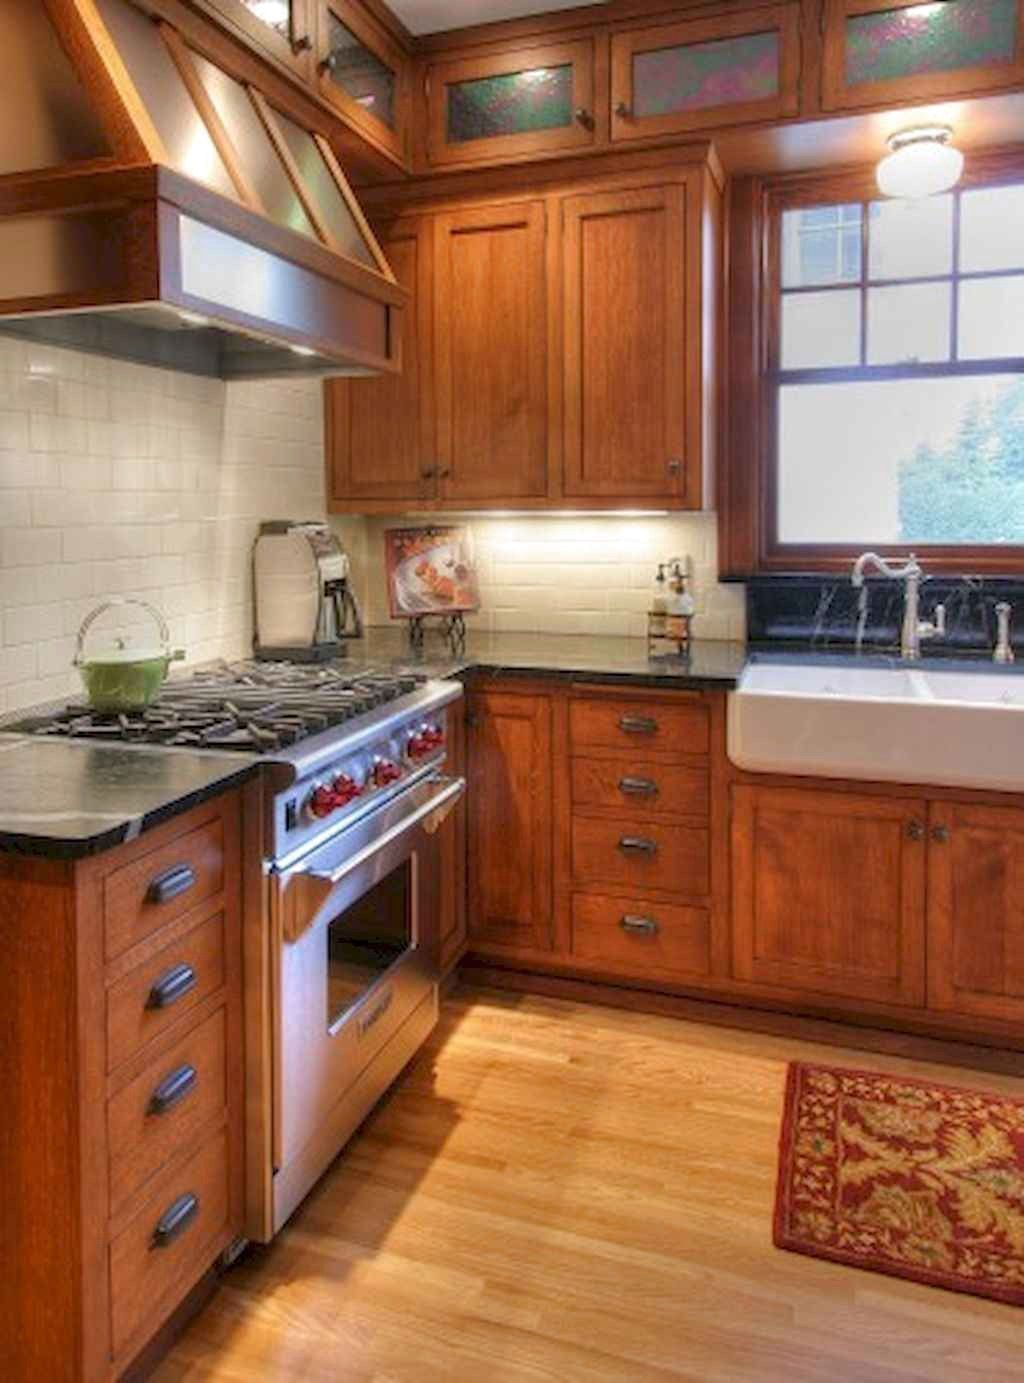 Popular Wooden Cabinets Design Ideas For Your Kitchen Decor 02